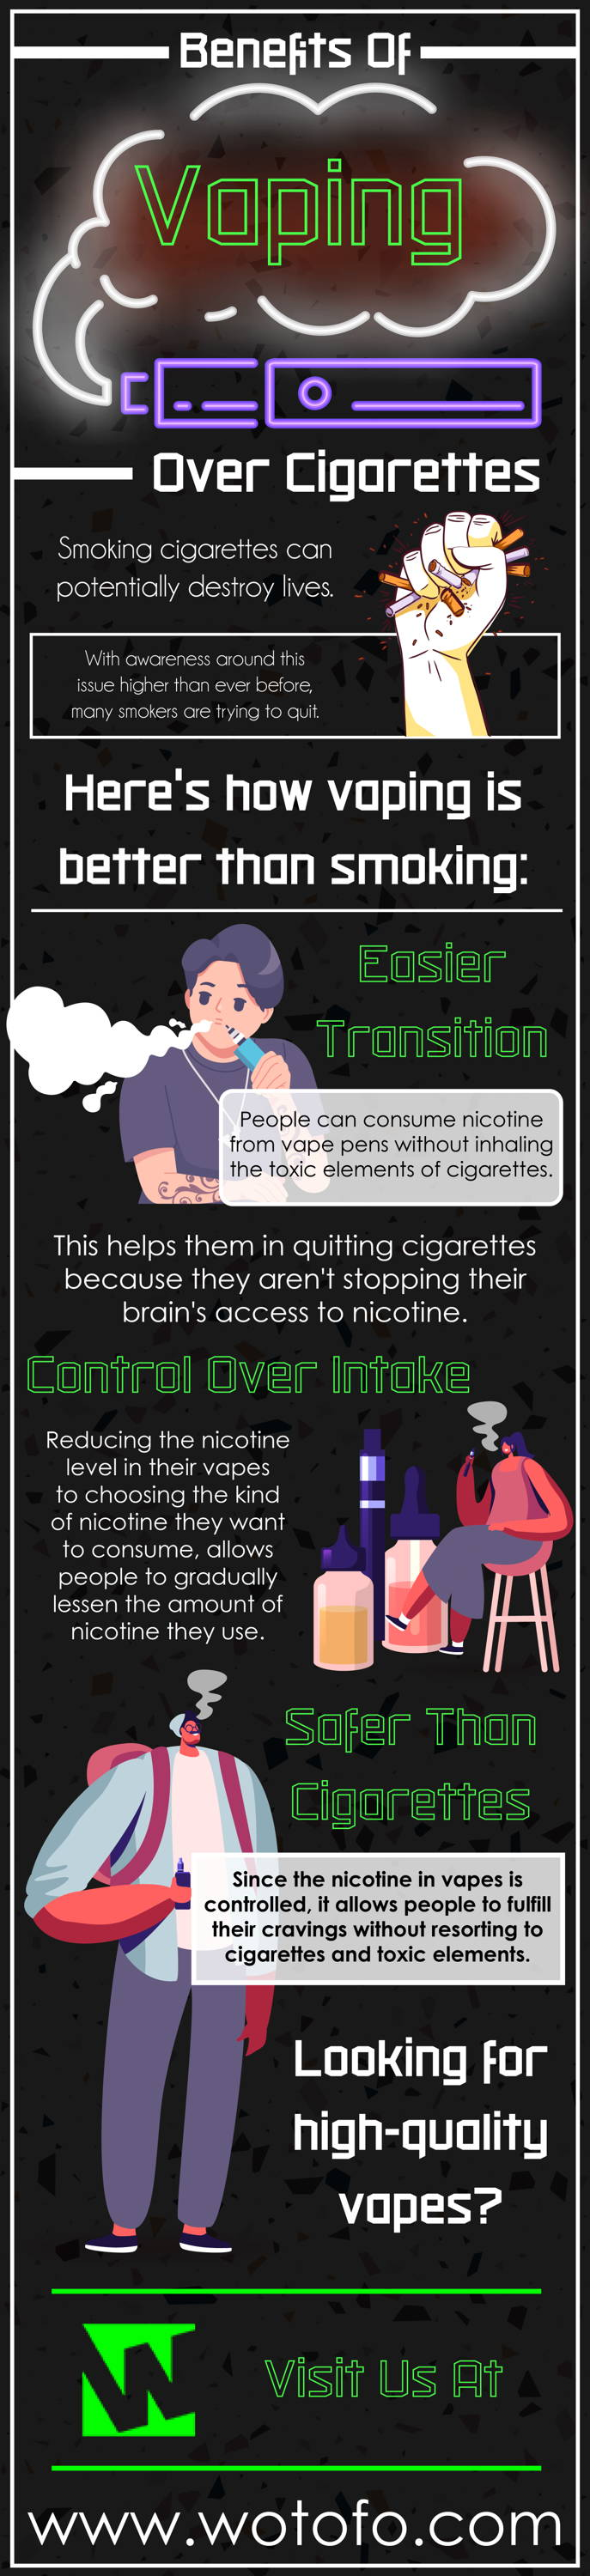 benefits of vaping over cigarettes